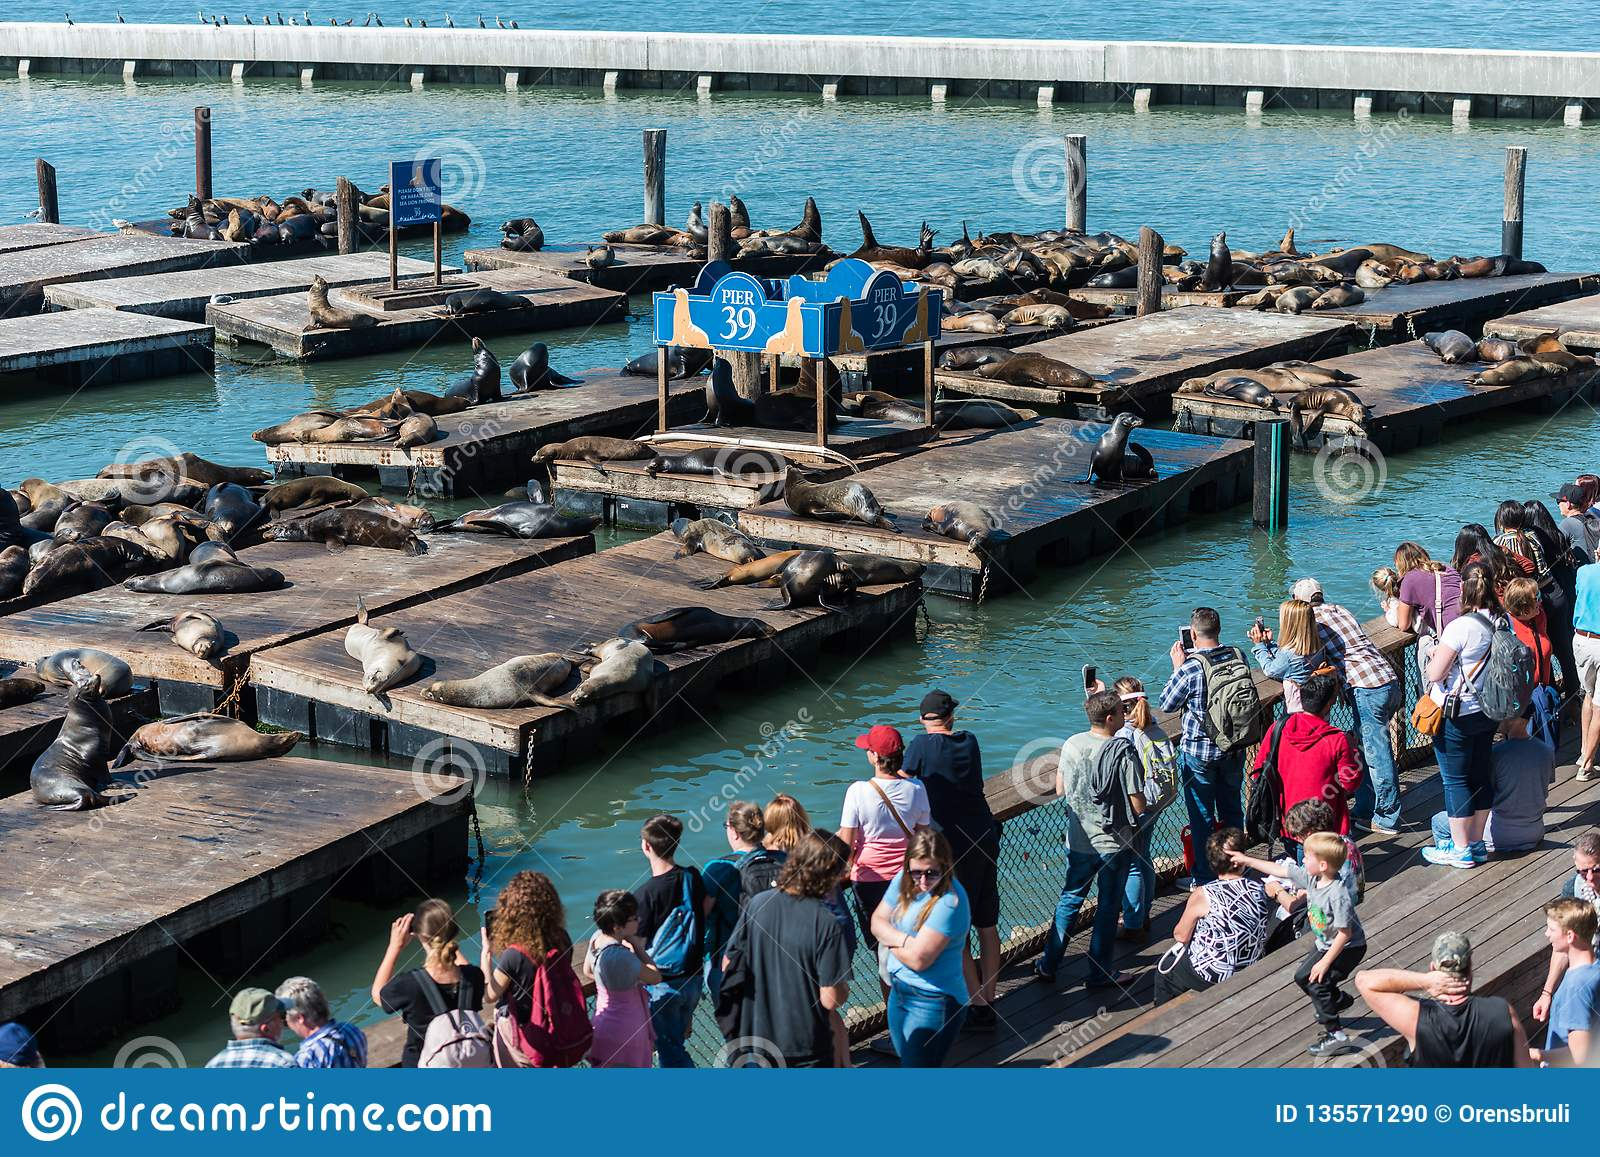 People watching the sea lions at the Pier 39 in San Francisco, California, USA.